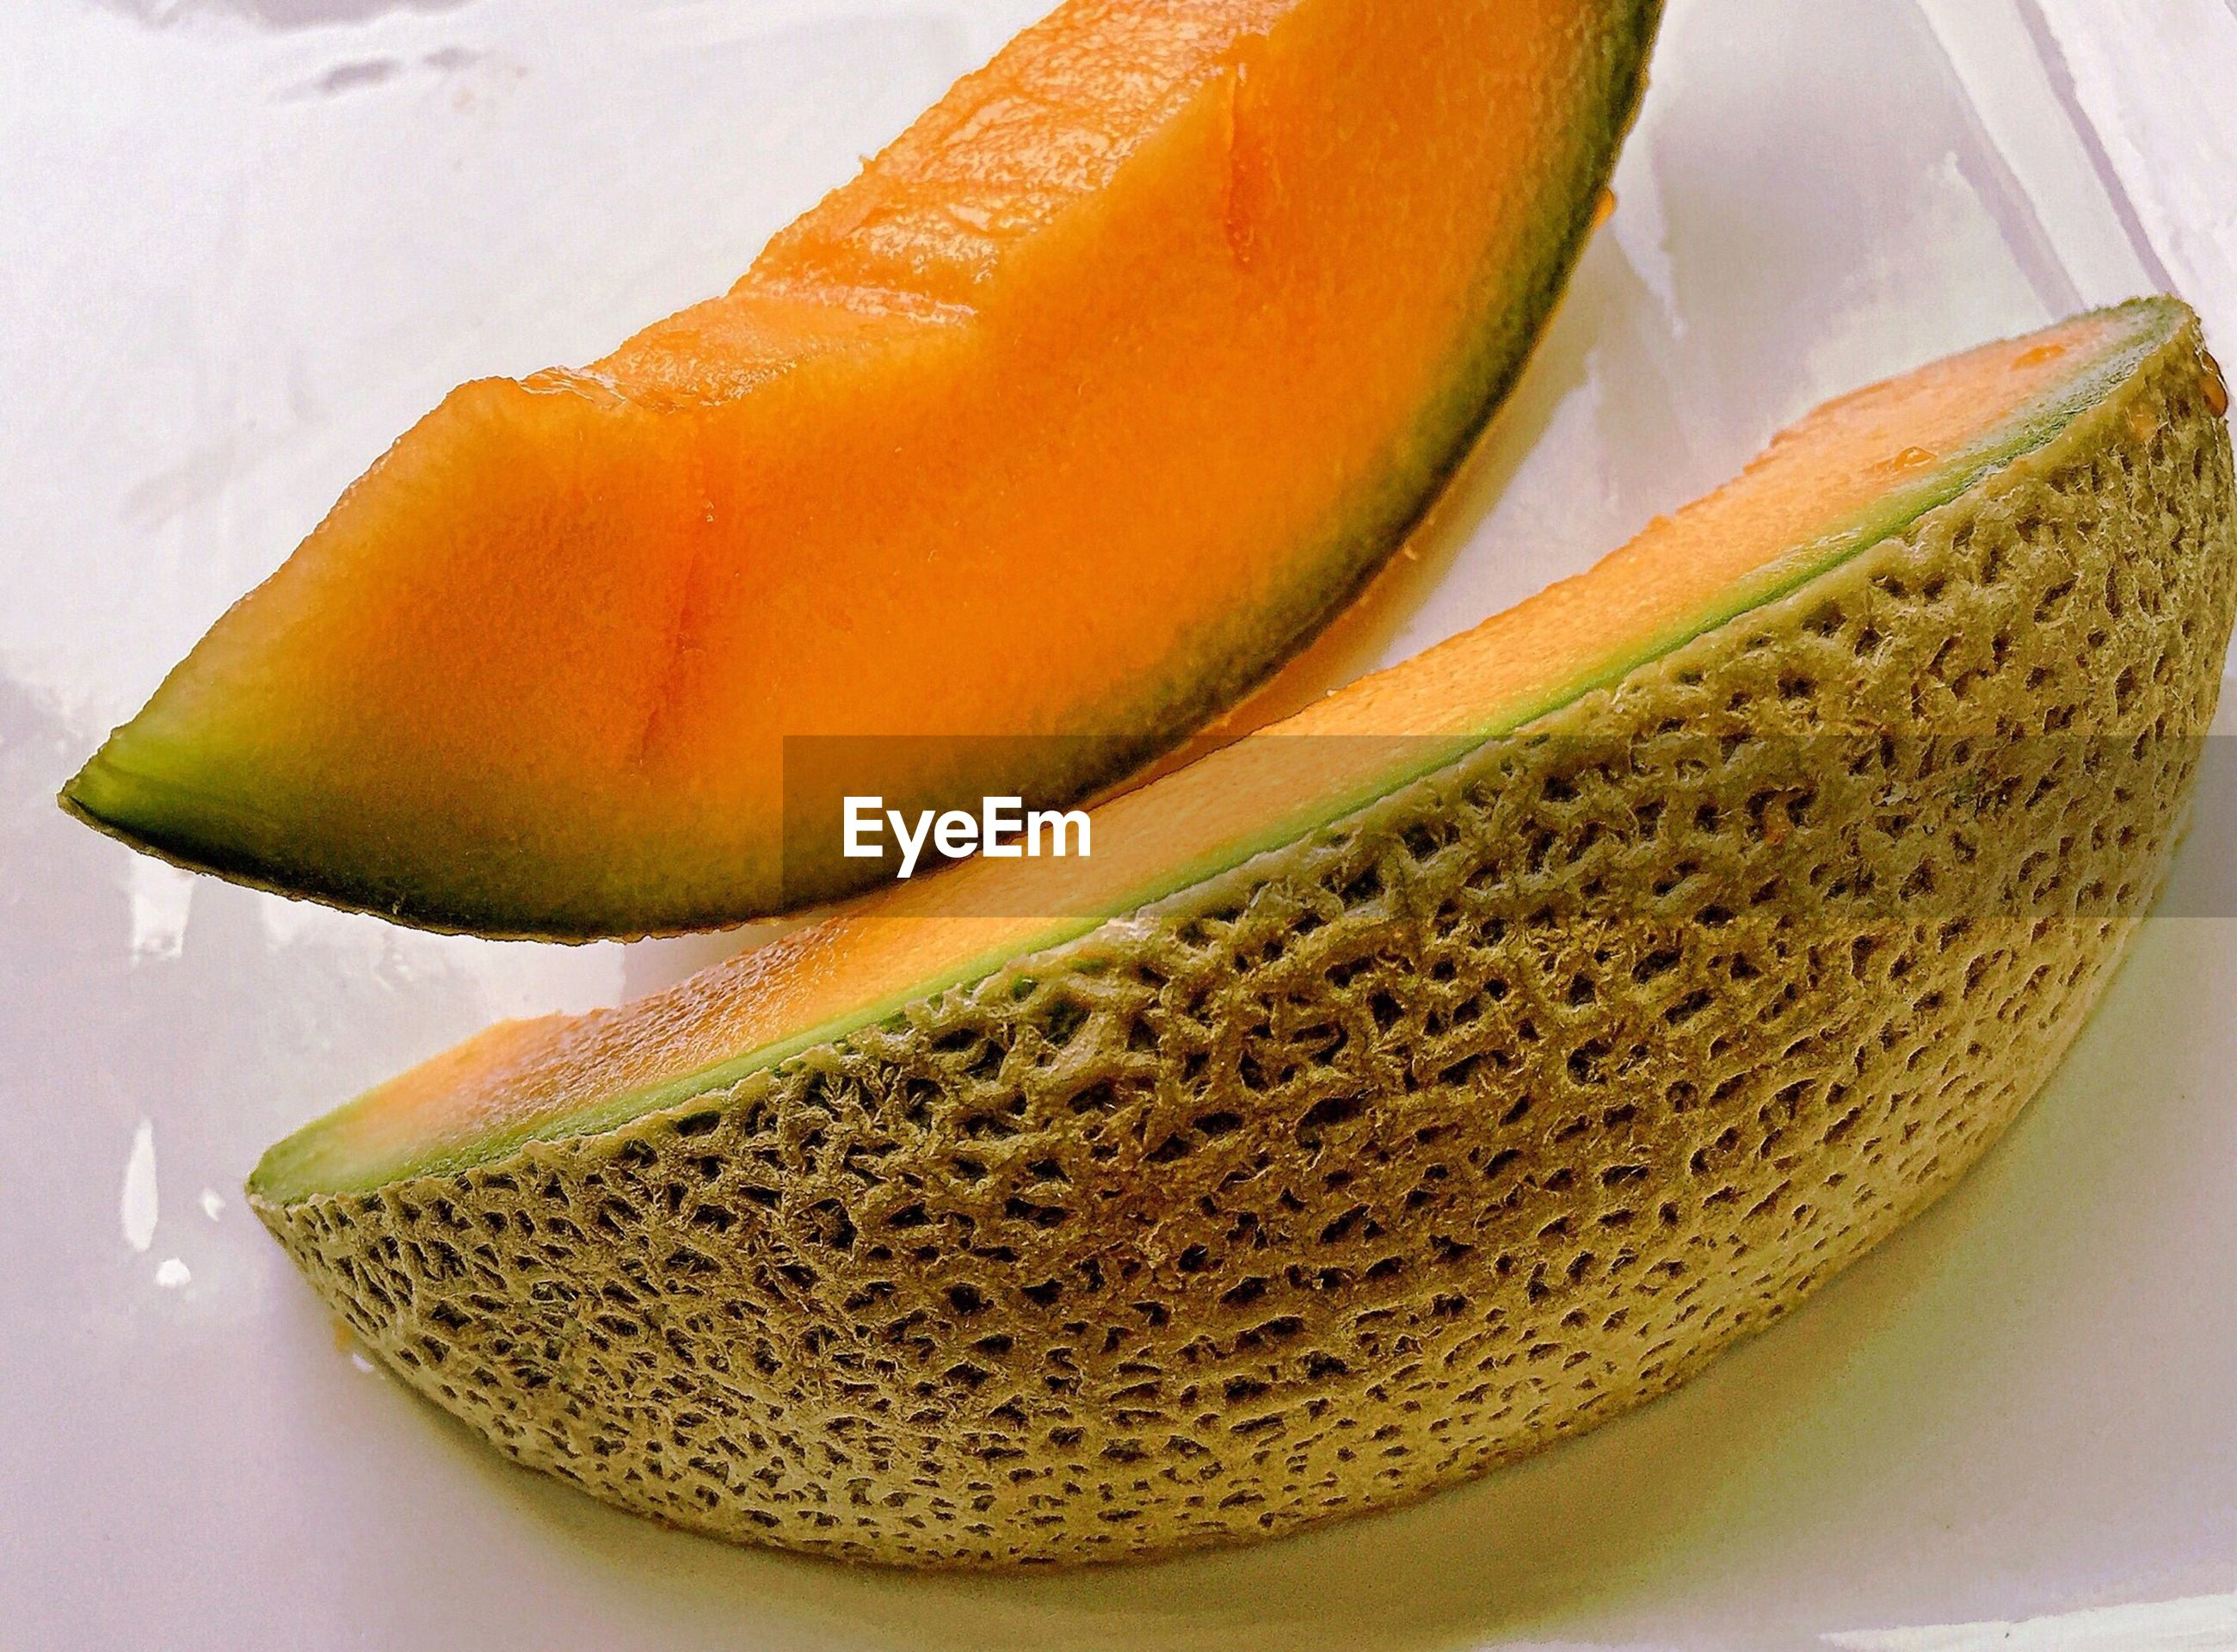 Close-up of sliced muskmelon on table